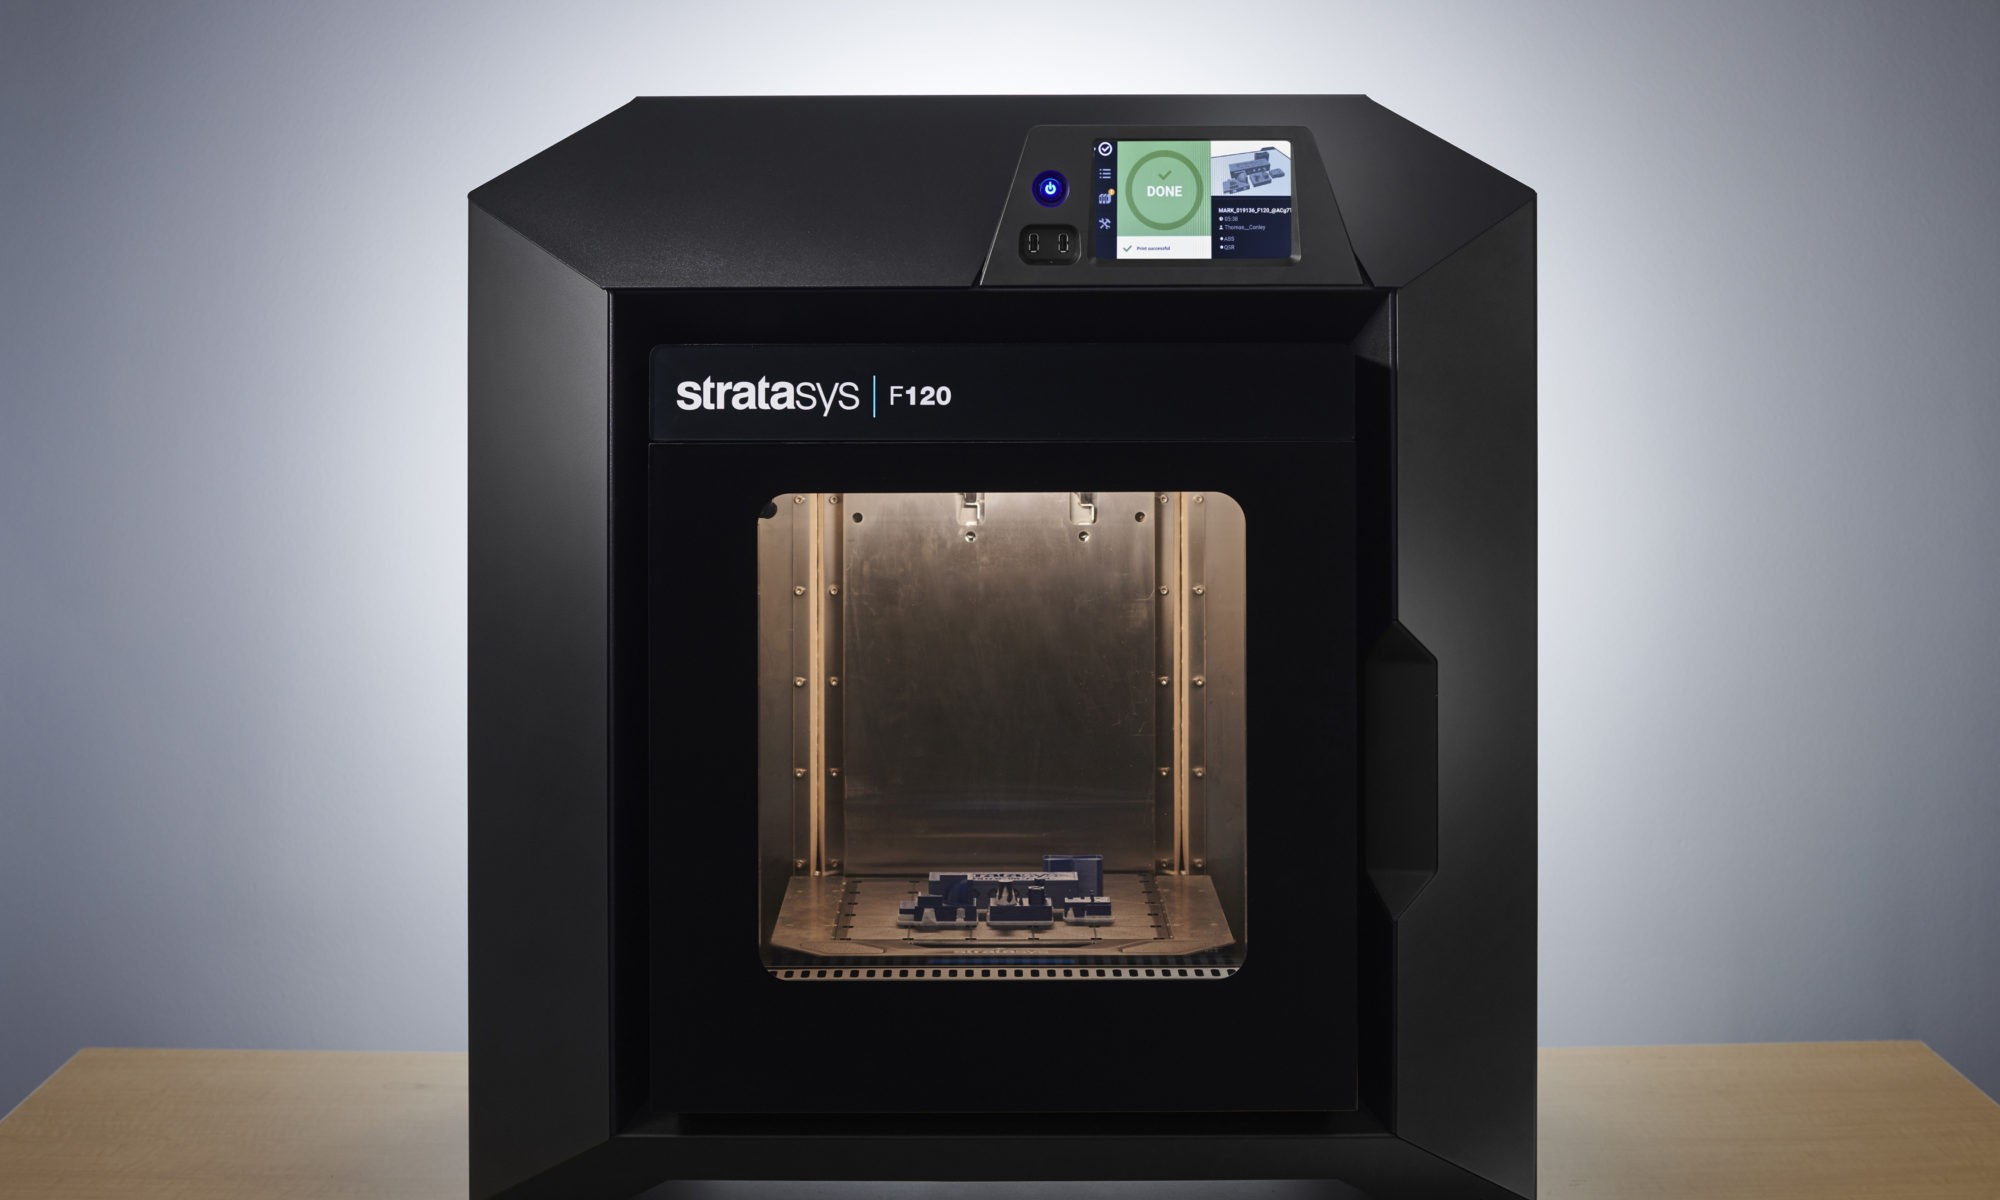 Stratasys F120 makes it simple for novices to get started with 3D printing.